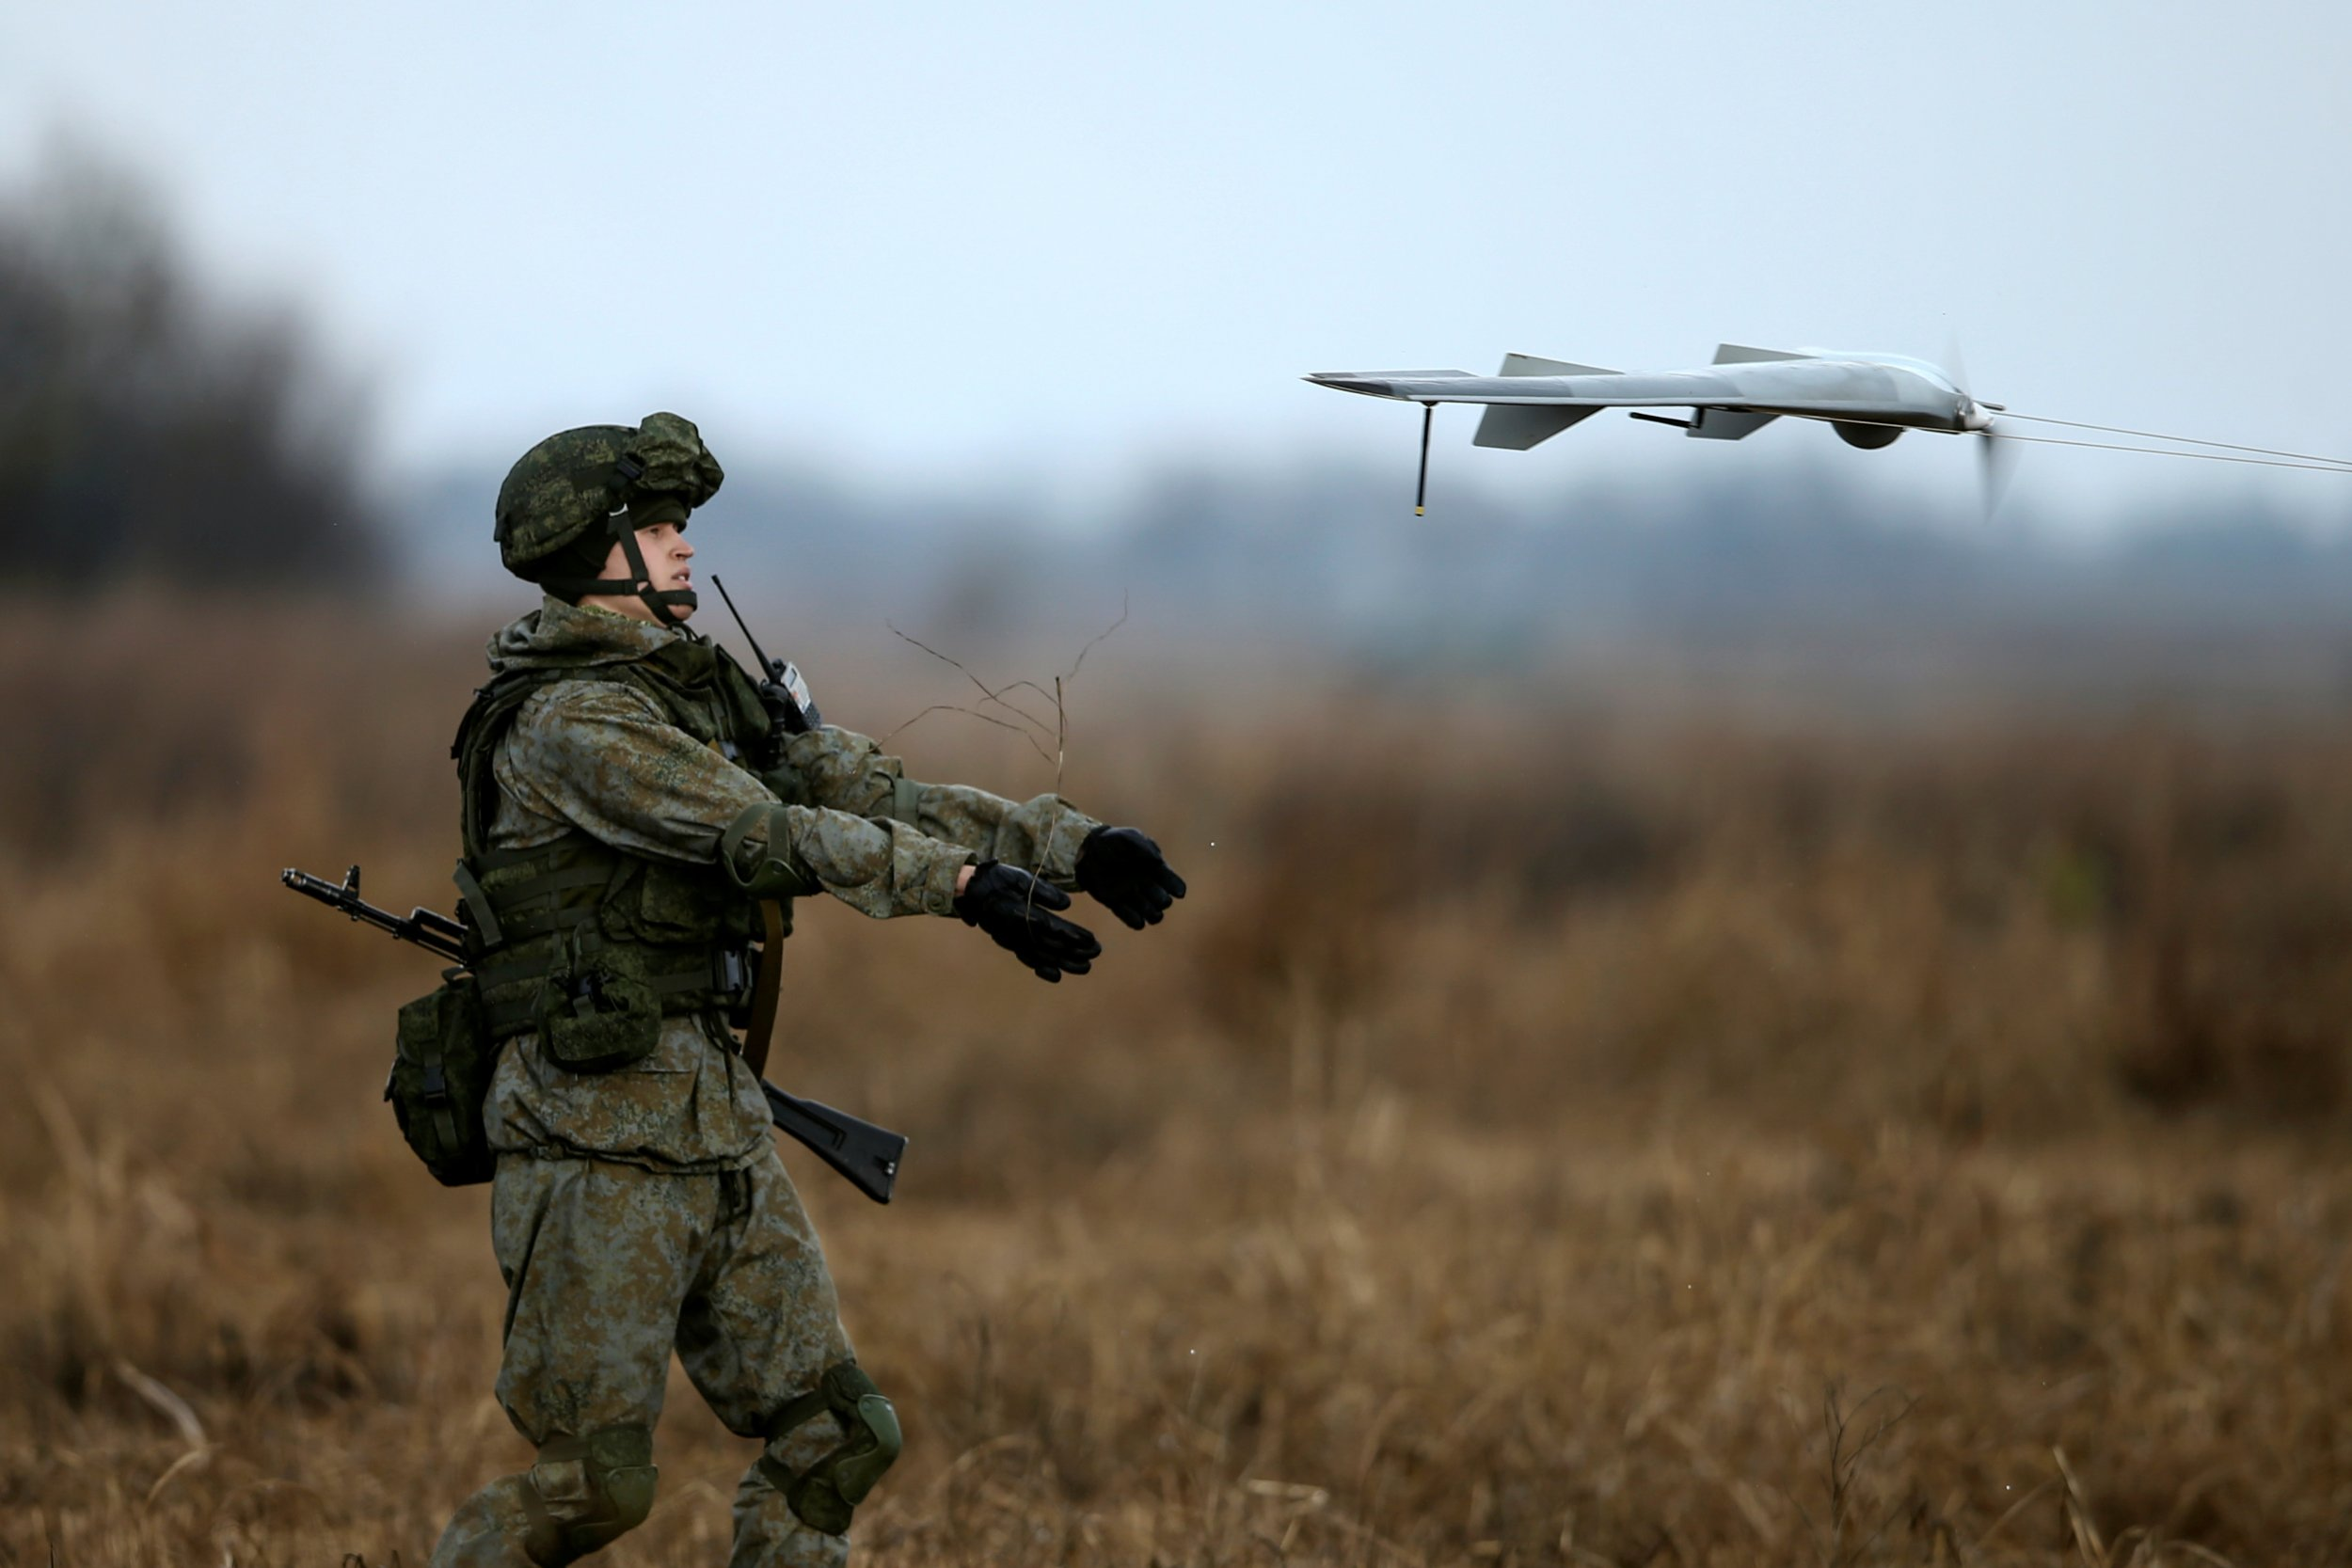 Russian soldier with drone